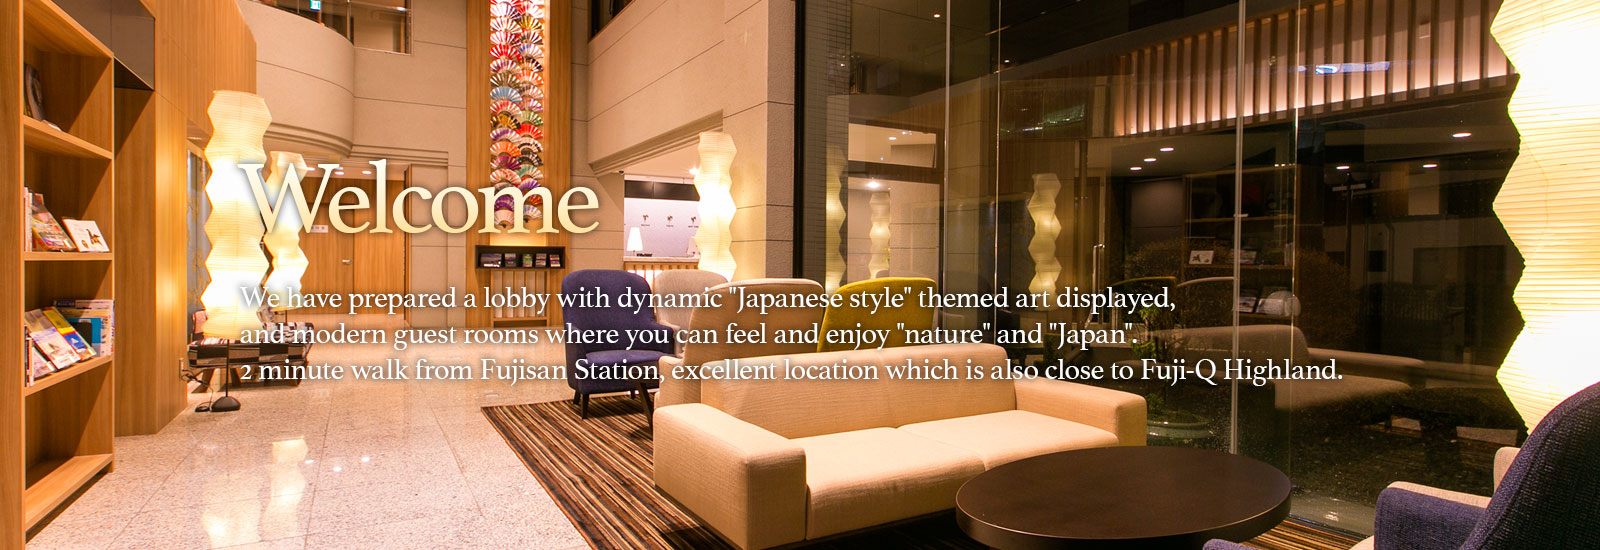 We have prepared a lobby with dynamic Japanese style themed art displayed, and modern guest rooms where you can feel and enjoy nature and Japan.